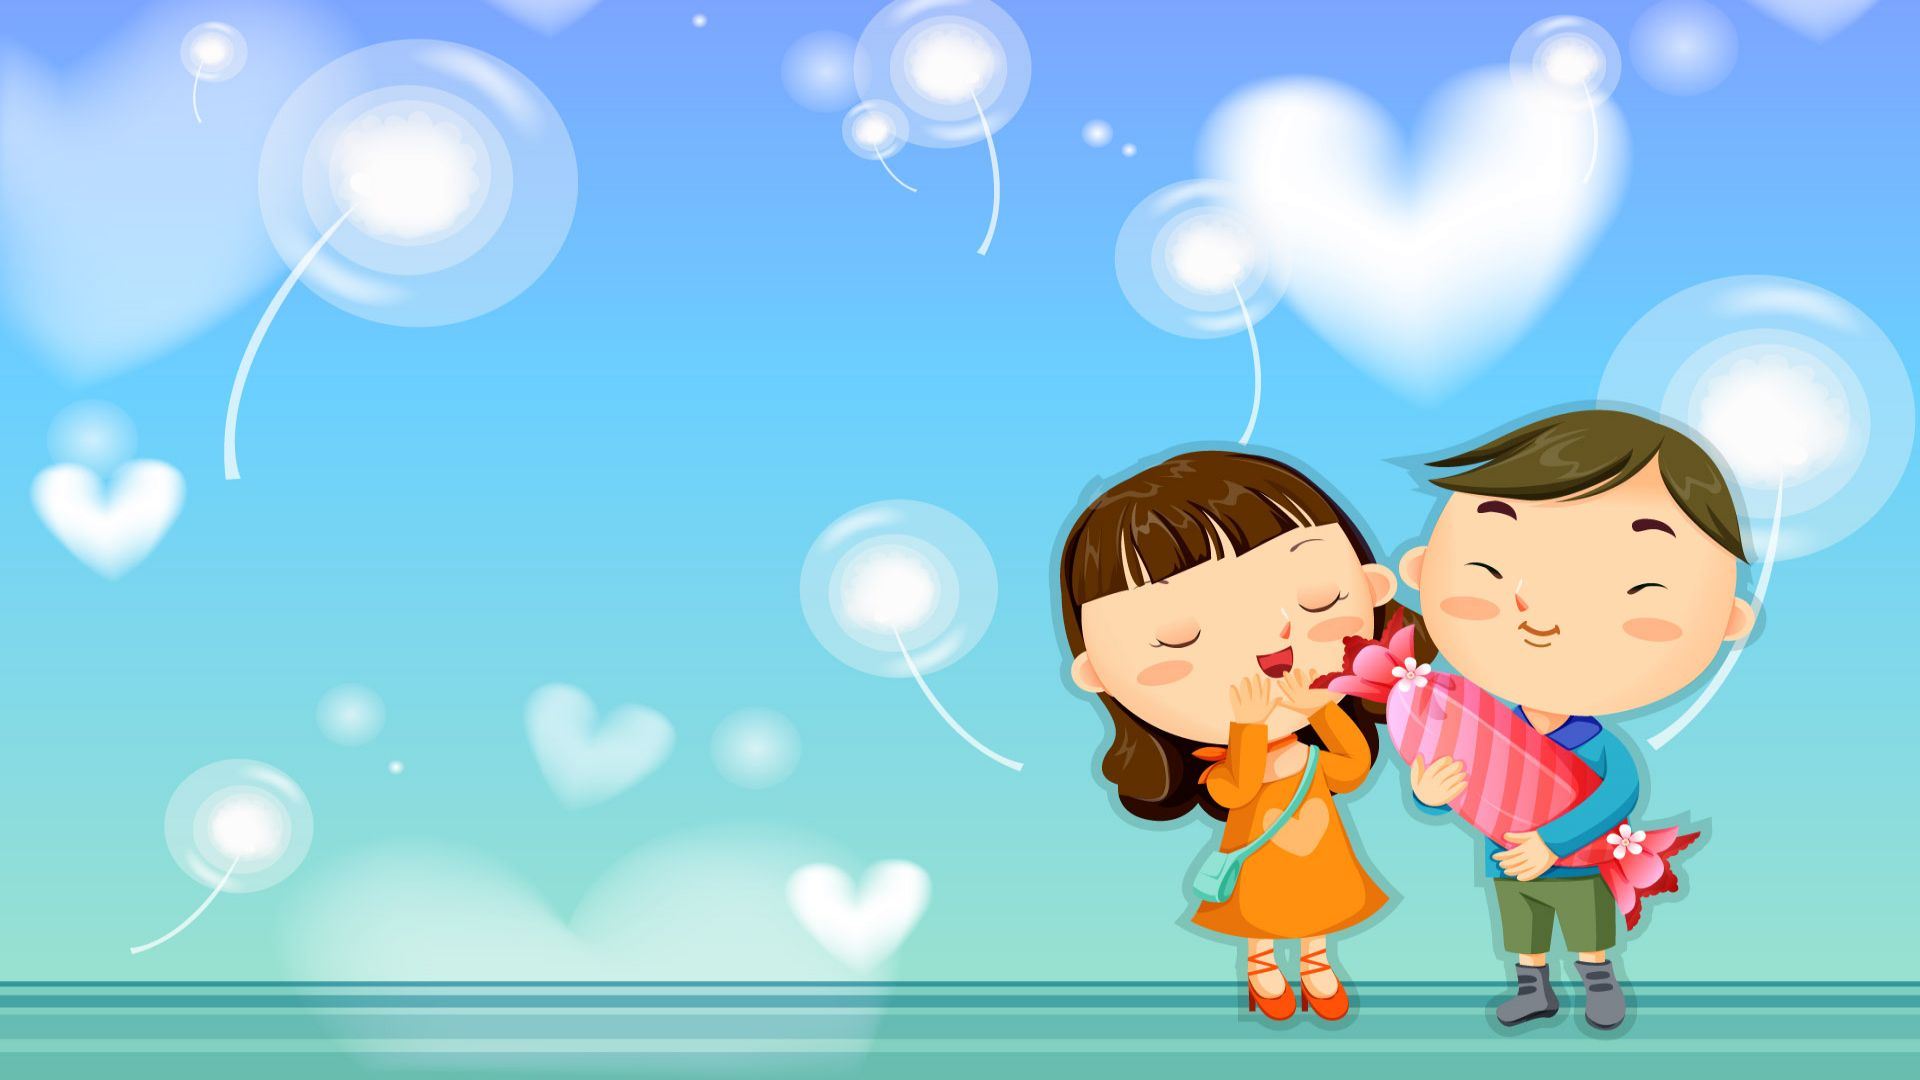 Latest cartoon Love Wallpaper : Karan portfolio: New cartoon characters